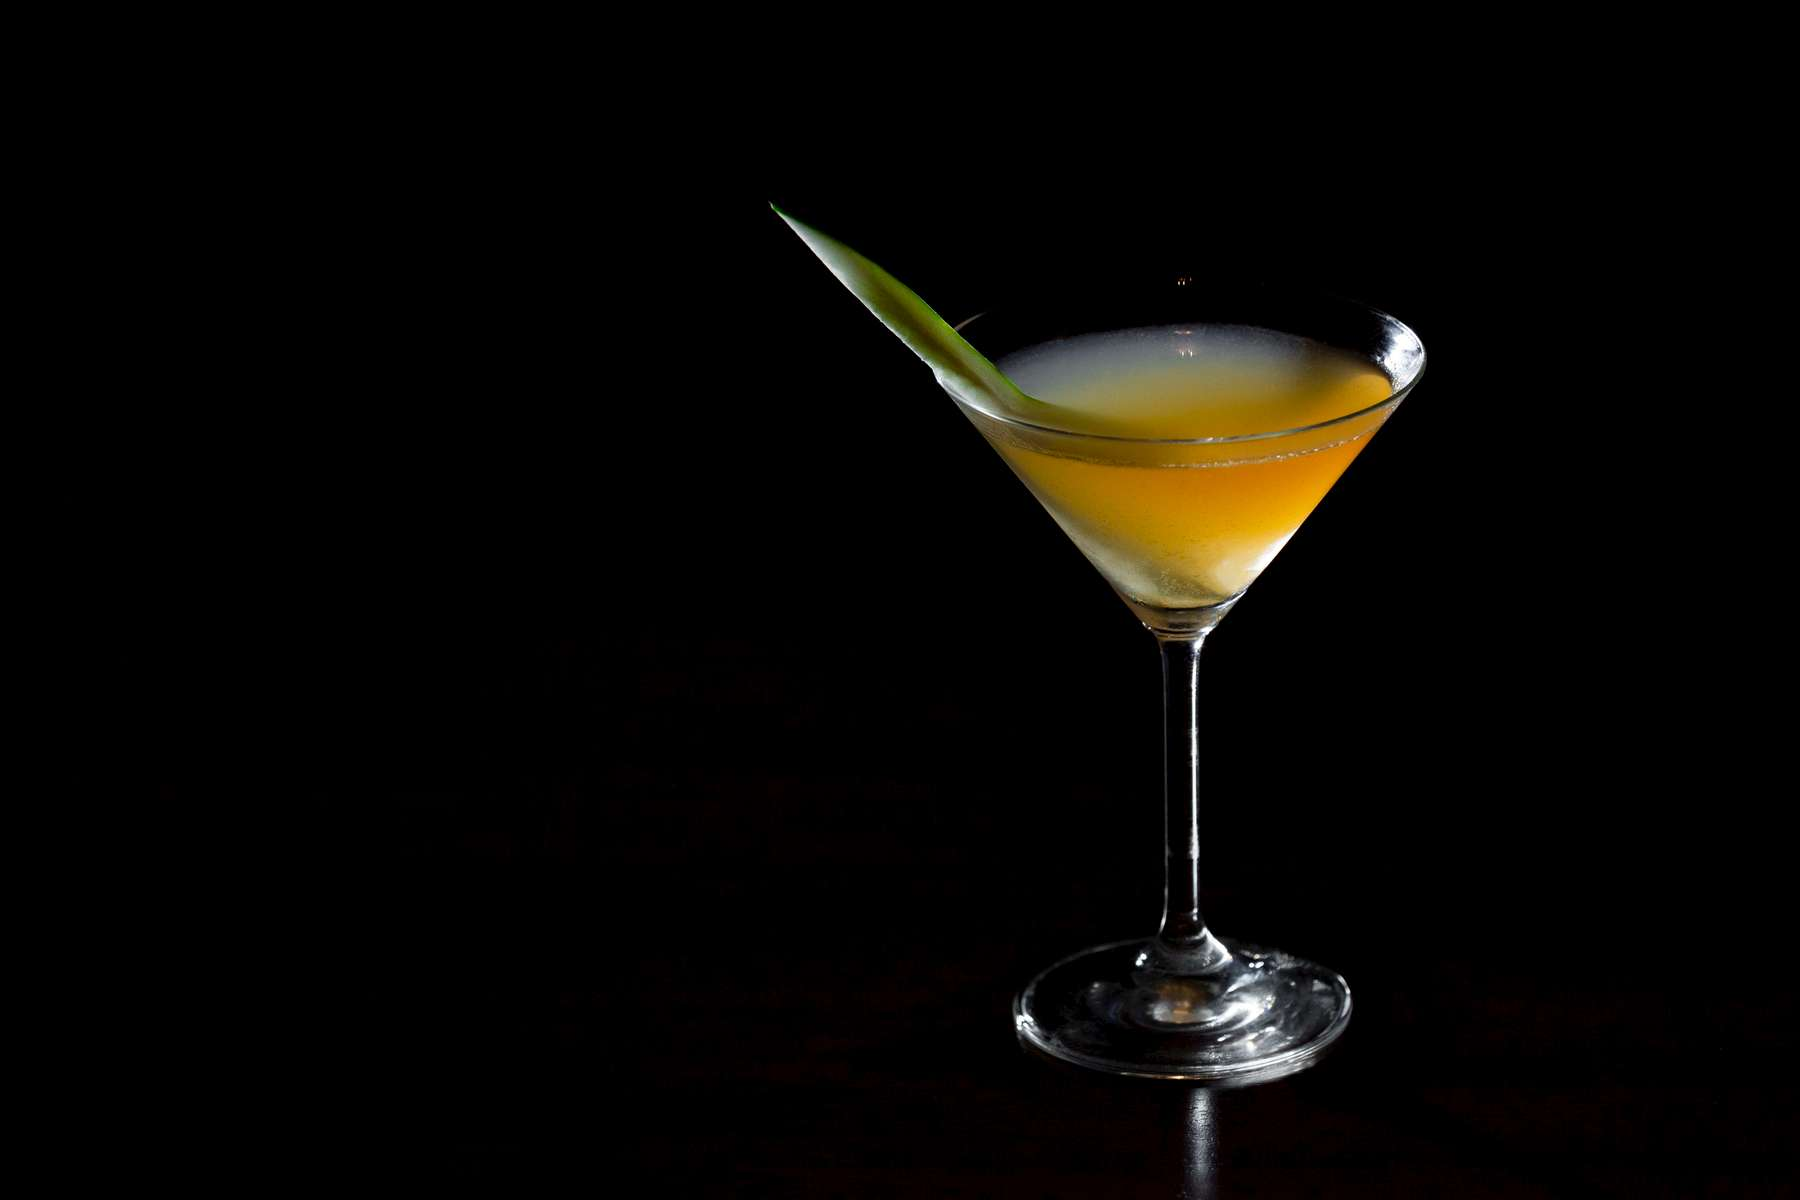 Pullman_Luang_Prabang_Laos_9112_Latelier_Cucumber_Martini_Photo_by_Cyril_Eberle_CEB_8675